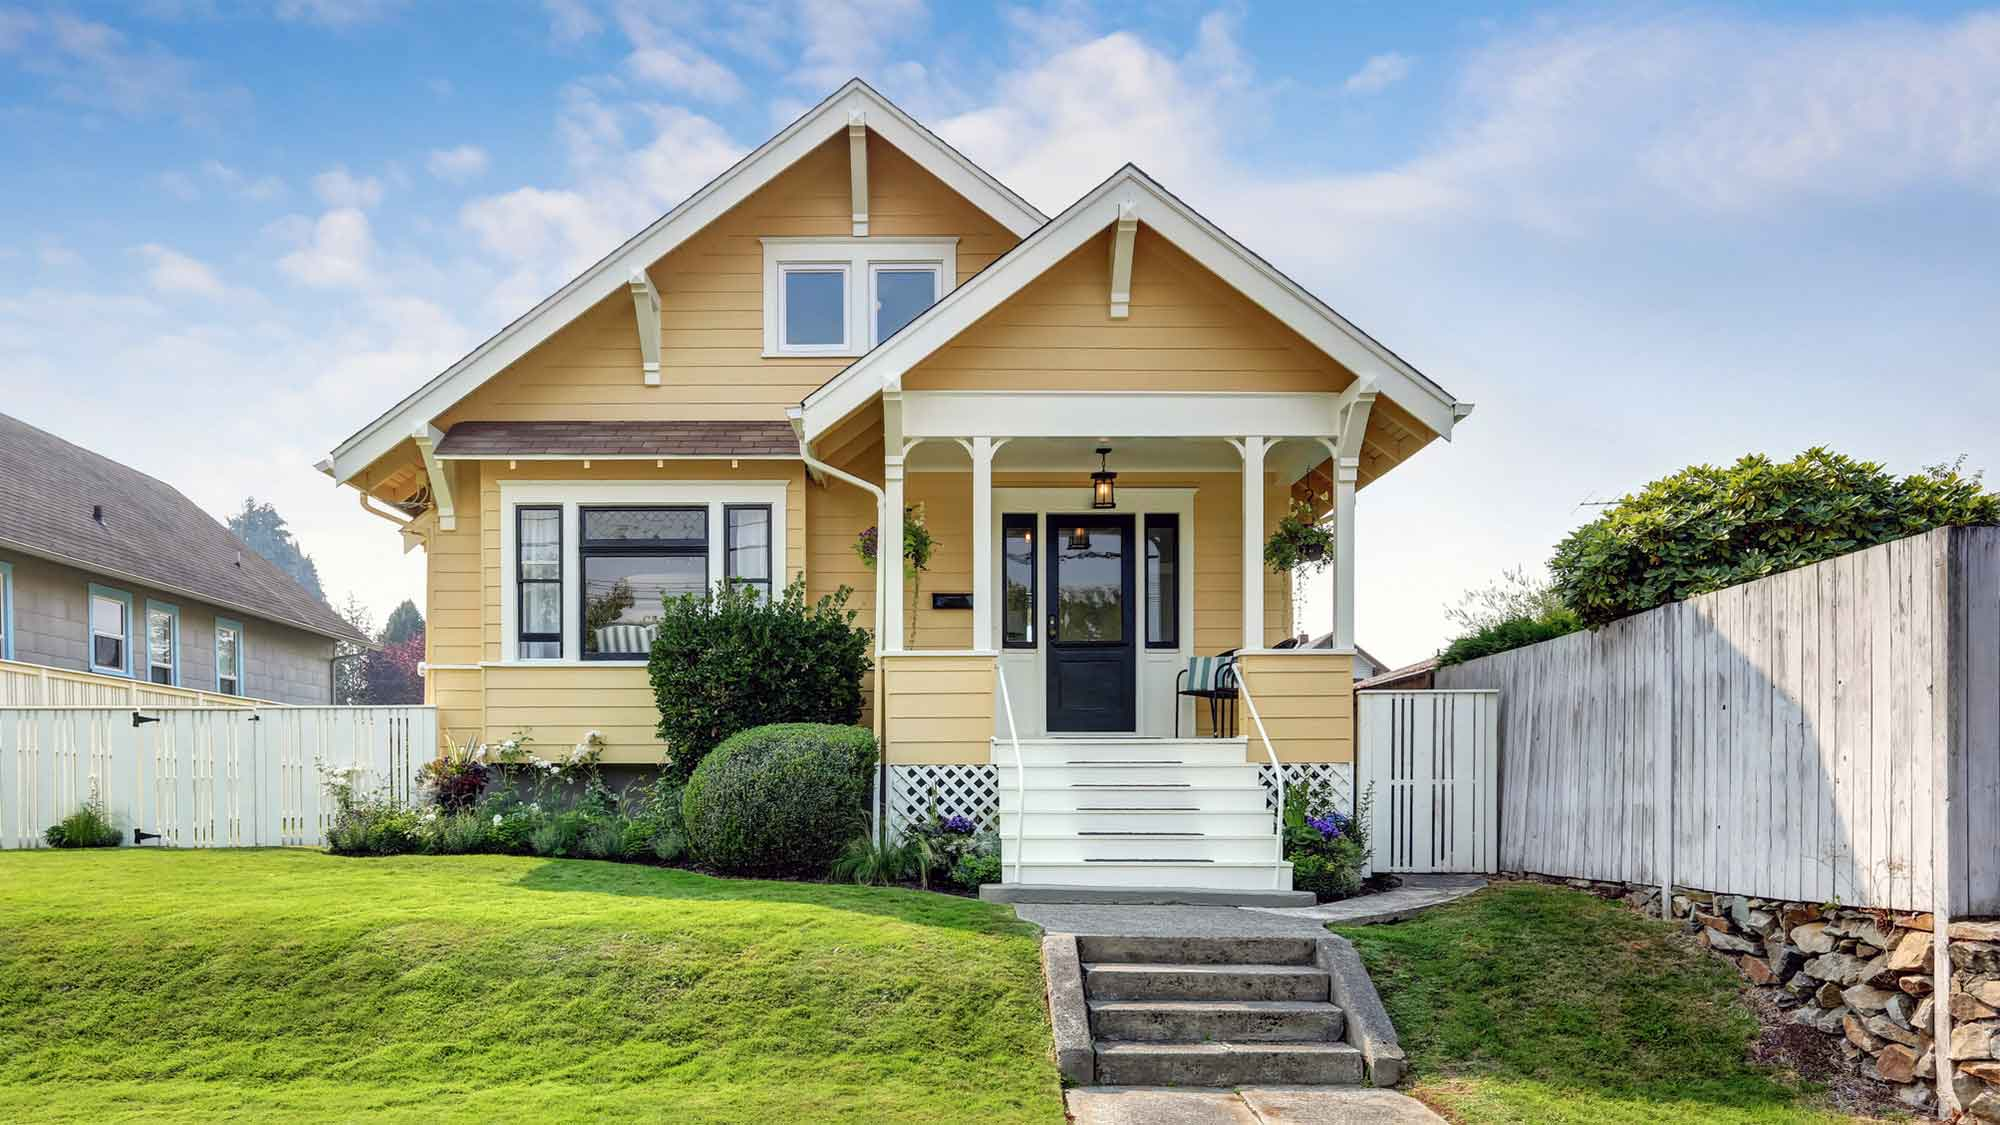 3 story craftsman style home 1